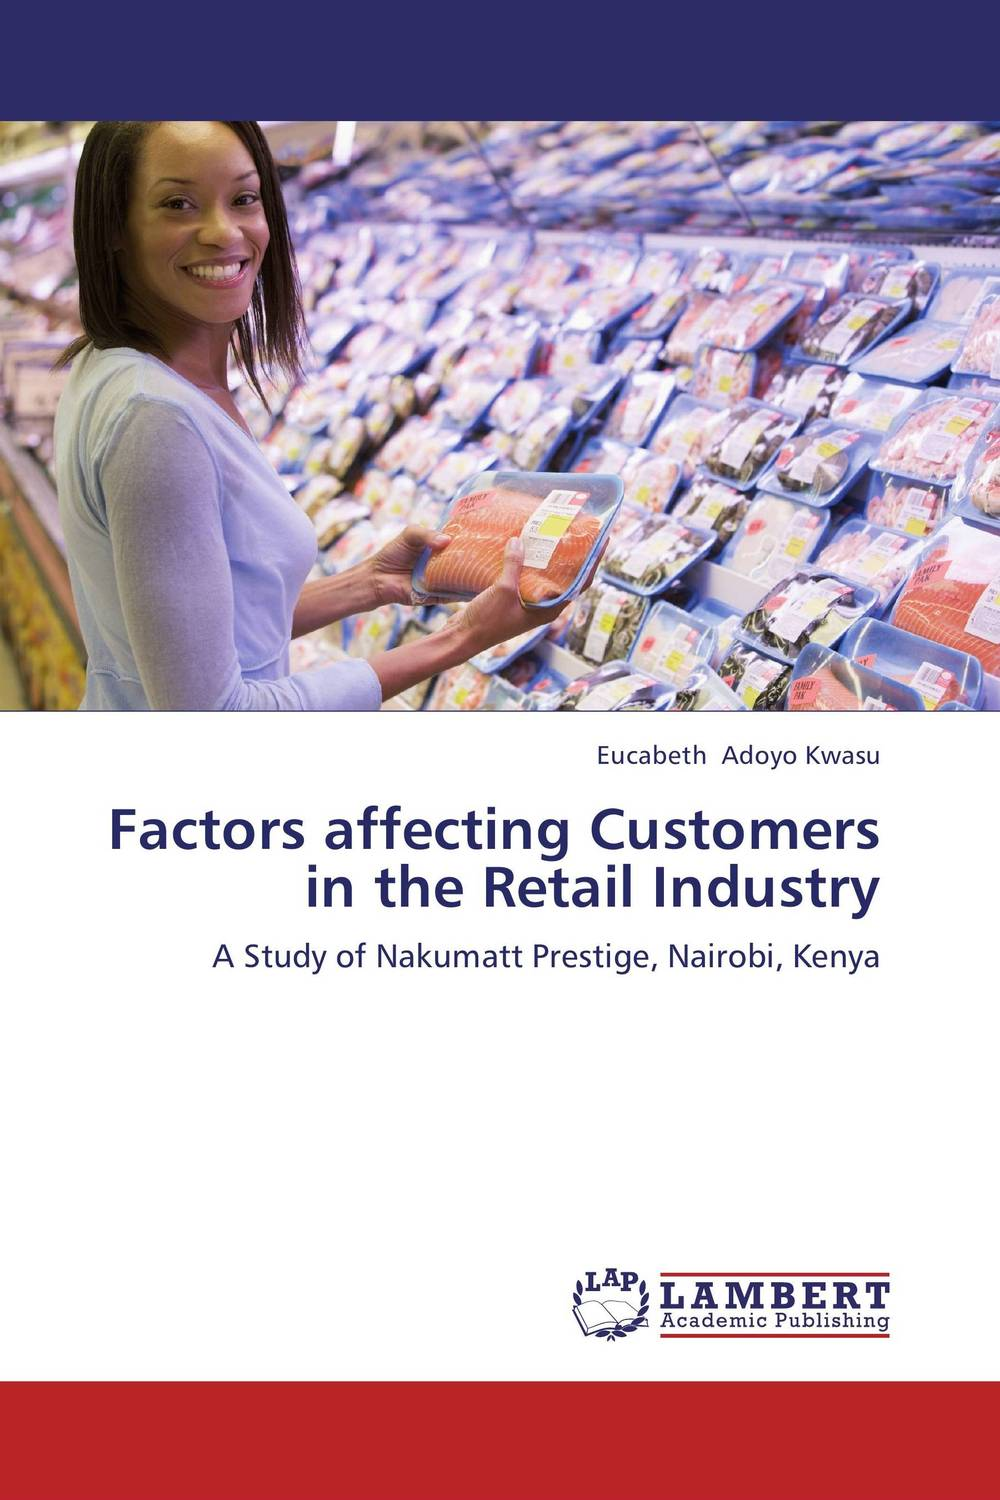 Factors affecting Customers in the Retail Industry michel chevalier luxury retail management how the world s top brands provide quality product and service support